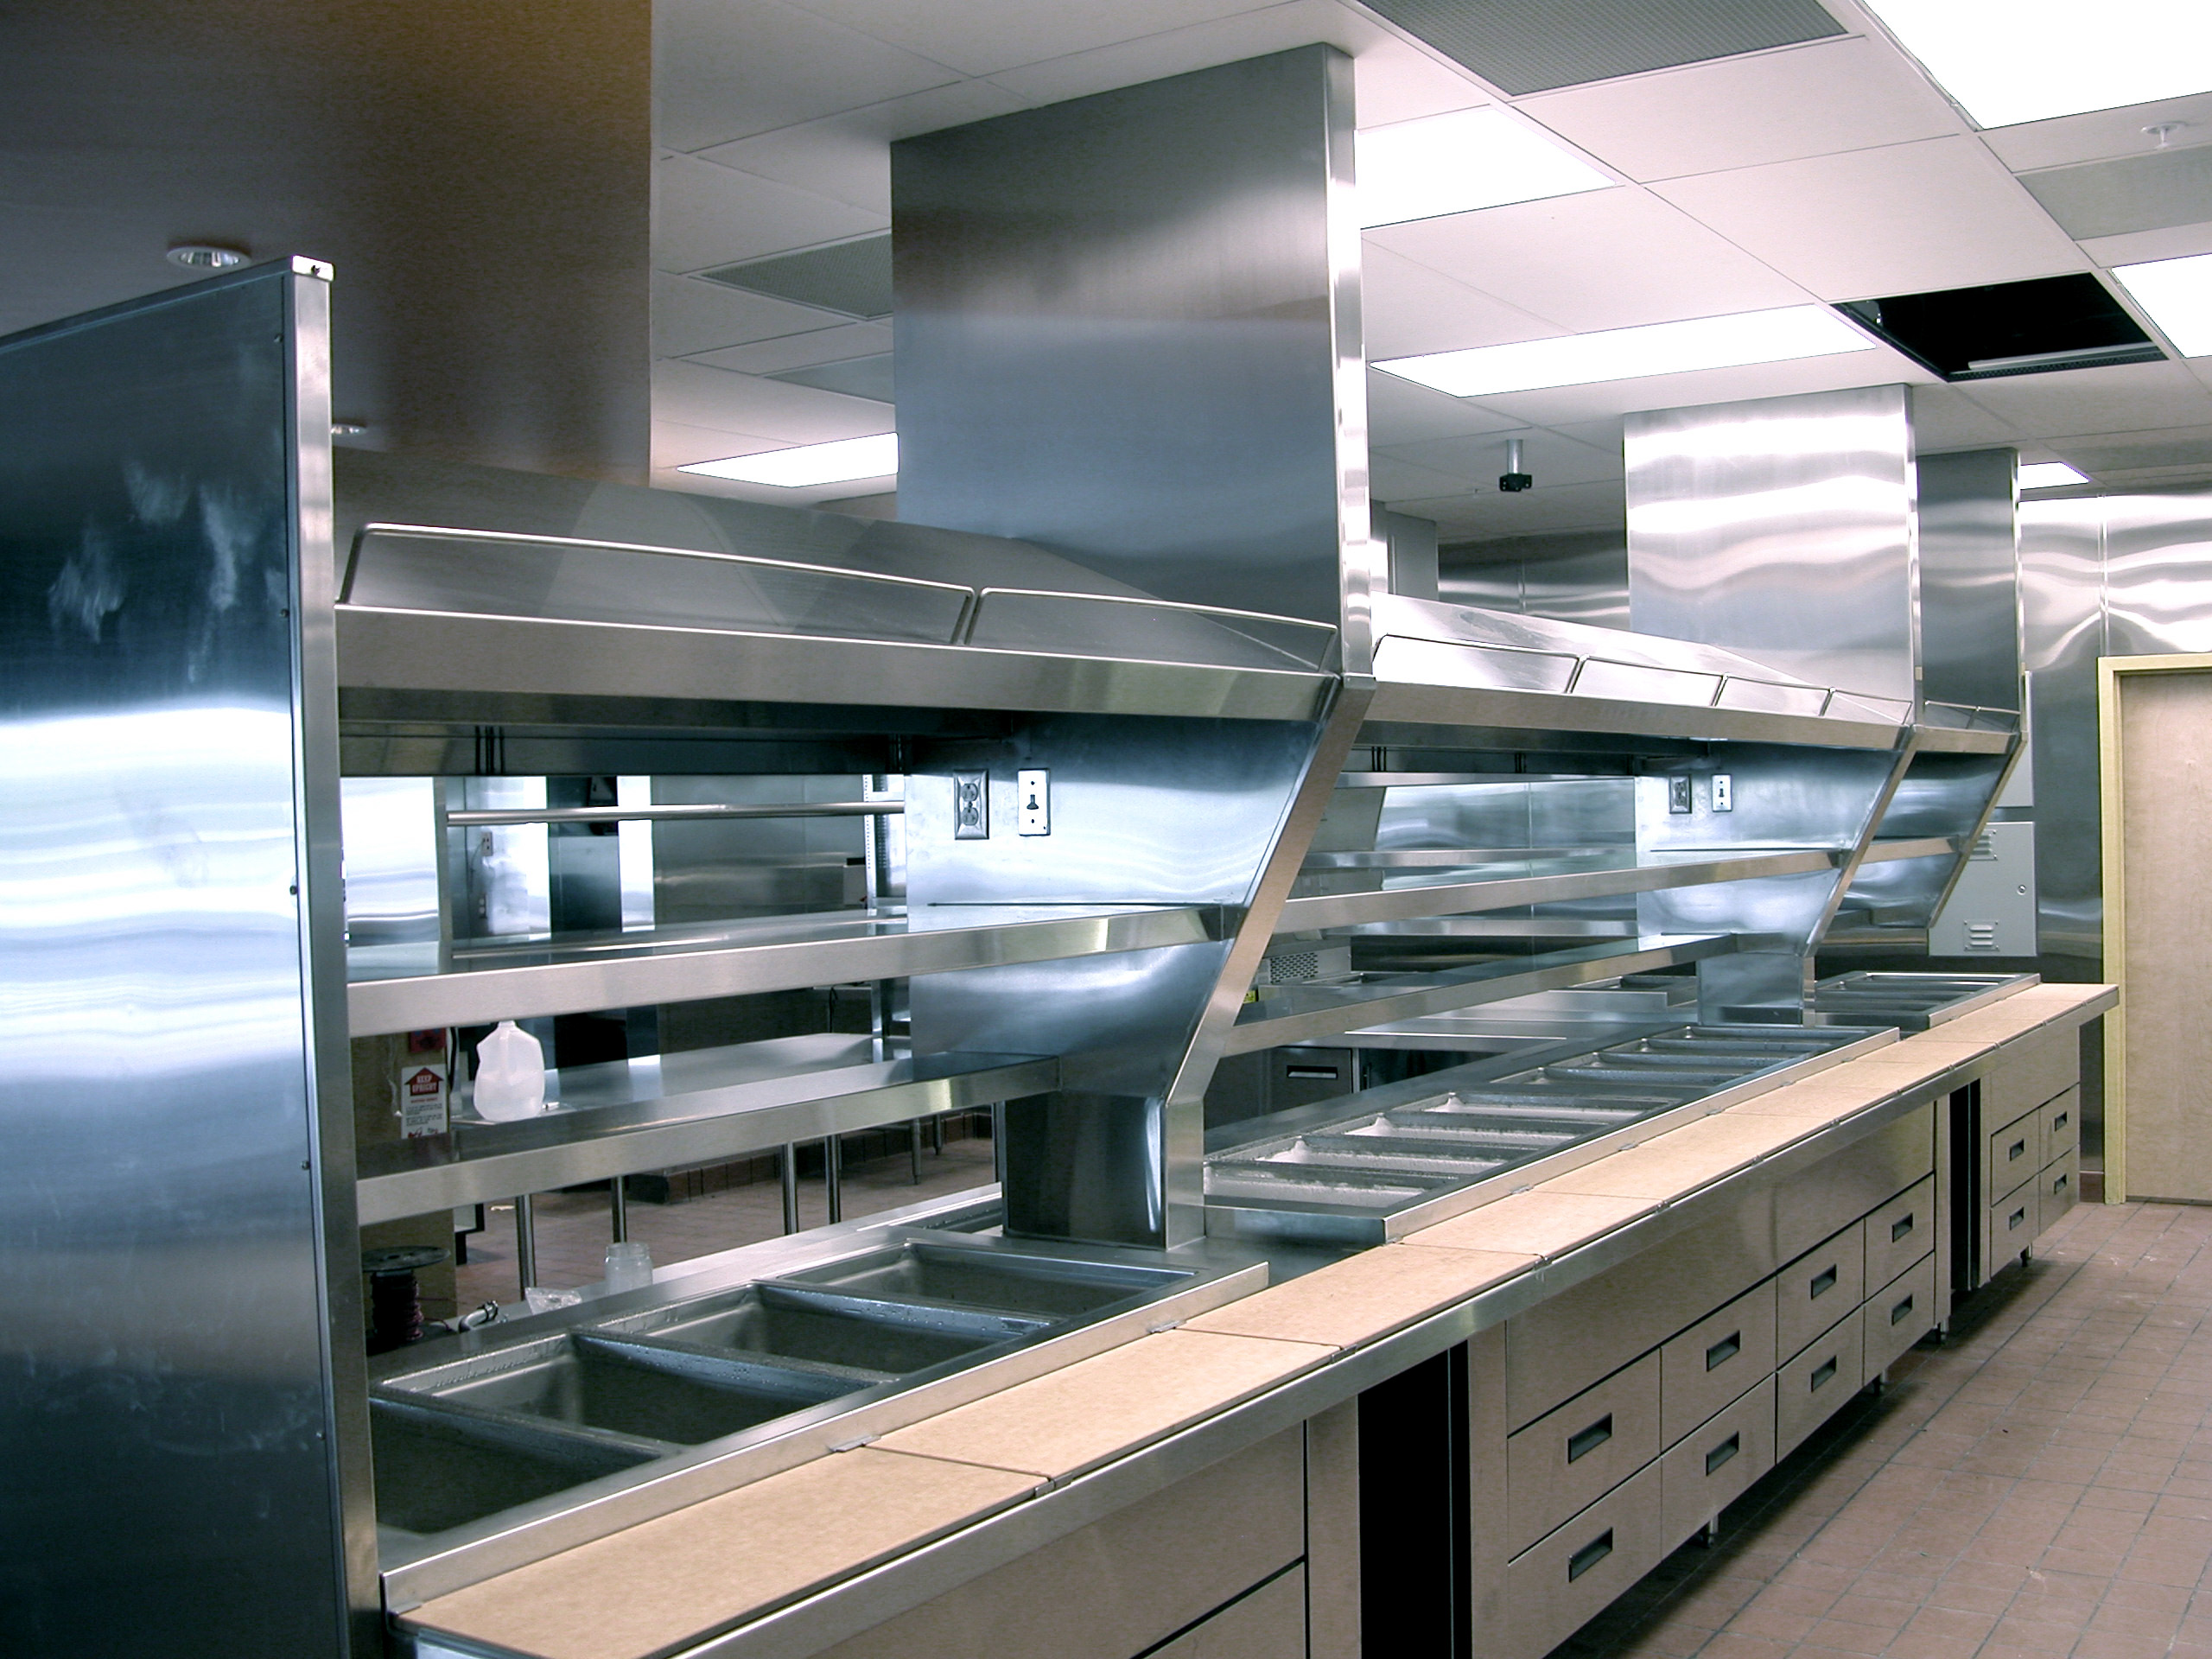 Commercial Kitchens Are Full Of Heavy Duty Industrial Equipment That